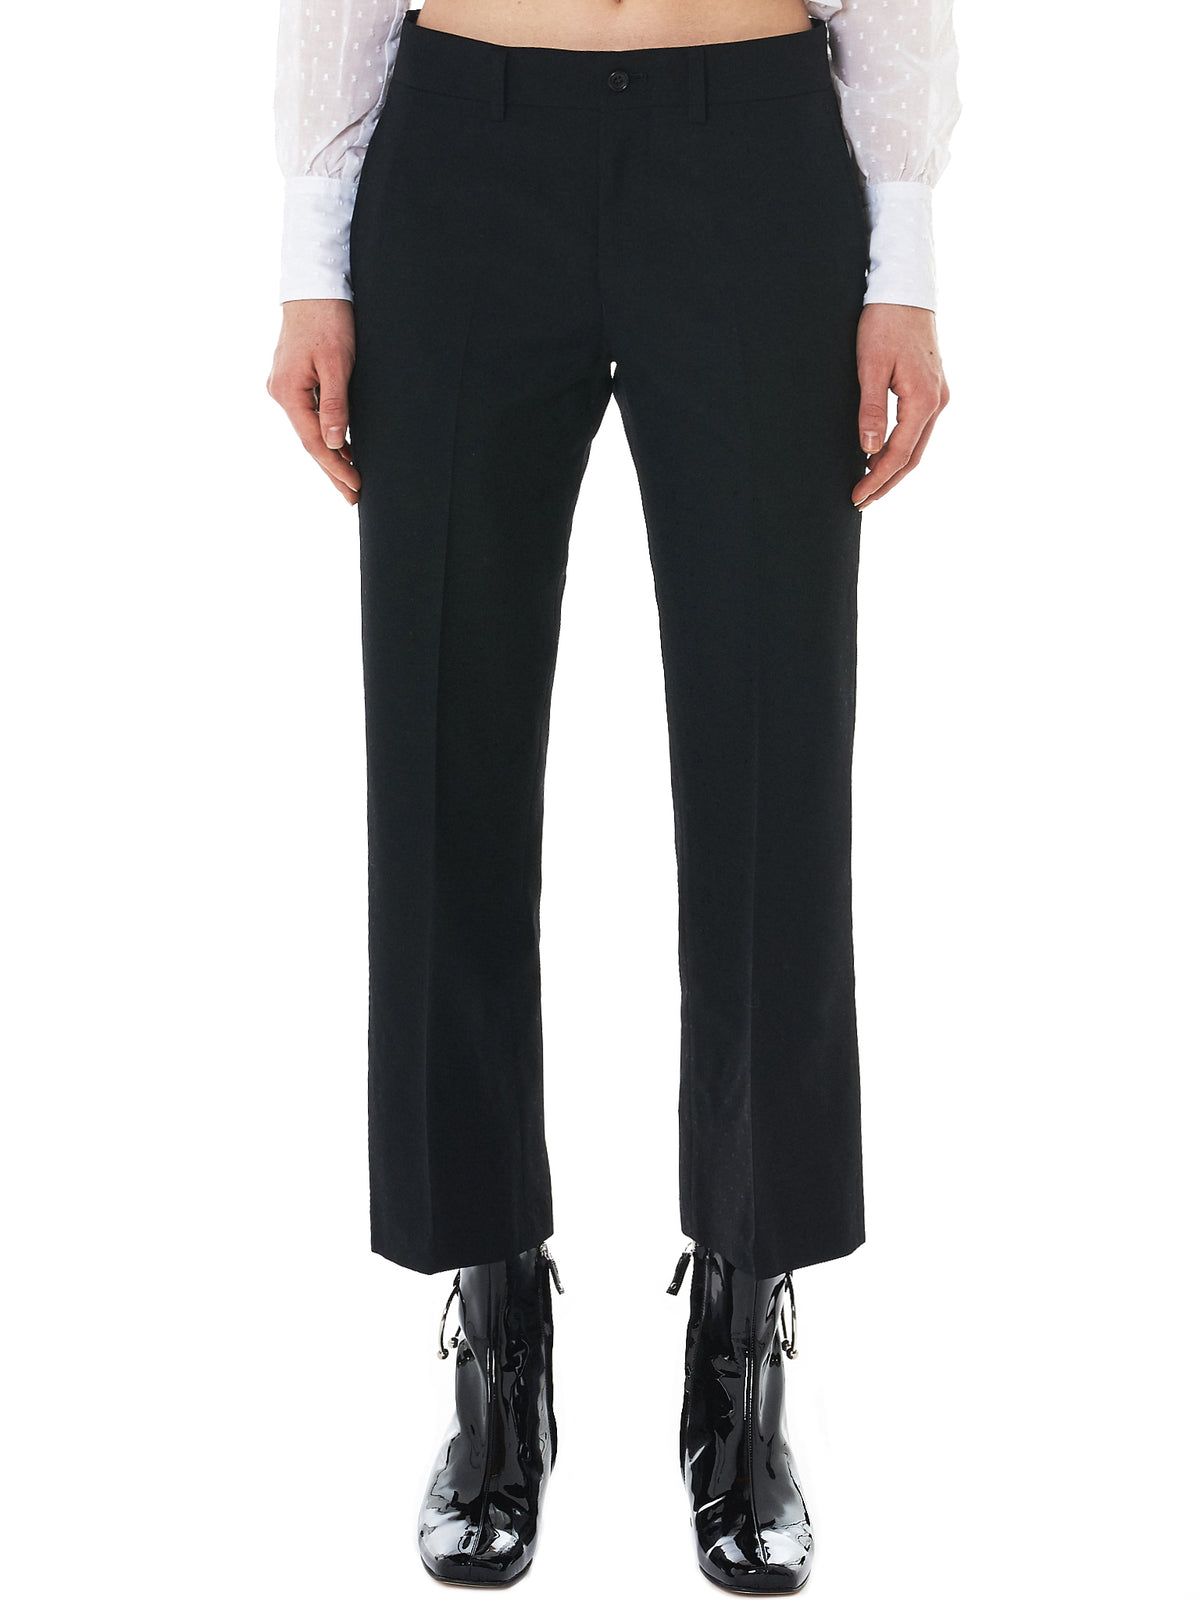 Cropped Trousers (TA-P202-051-1)